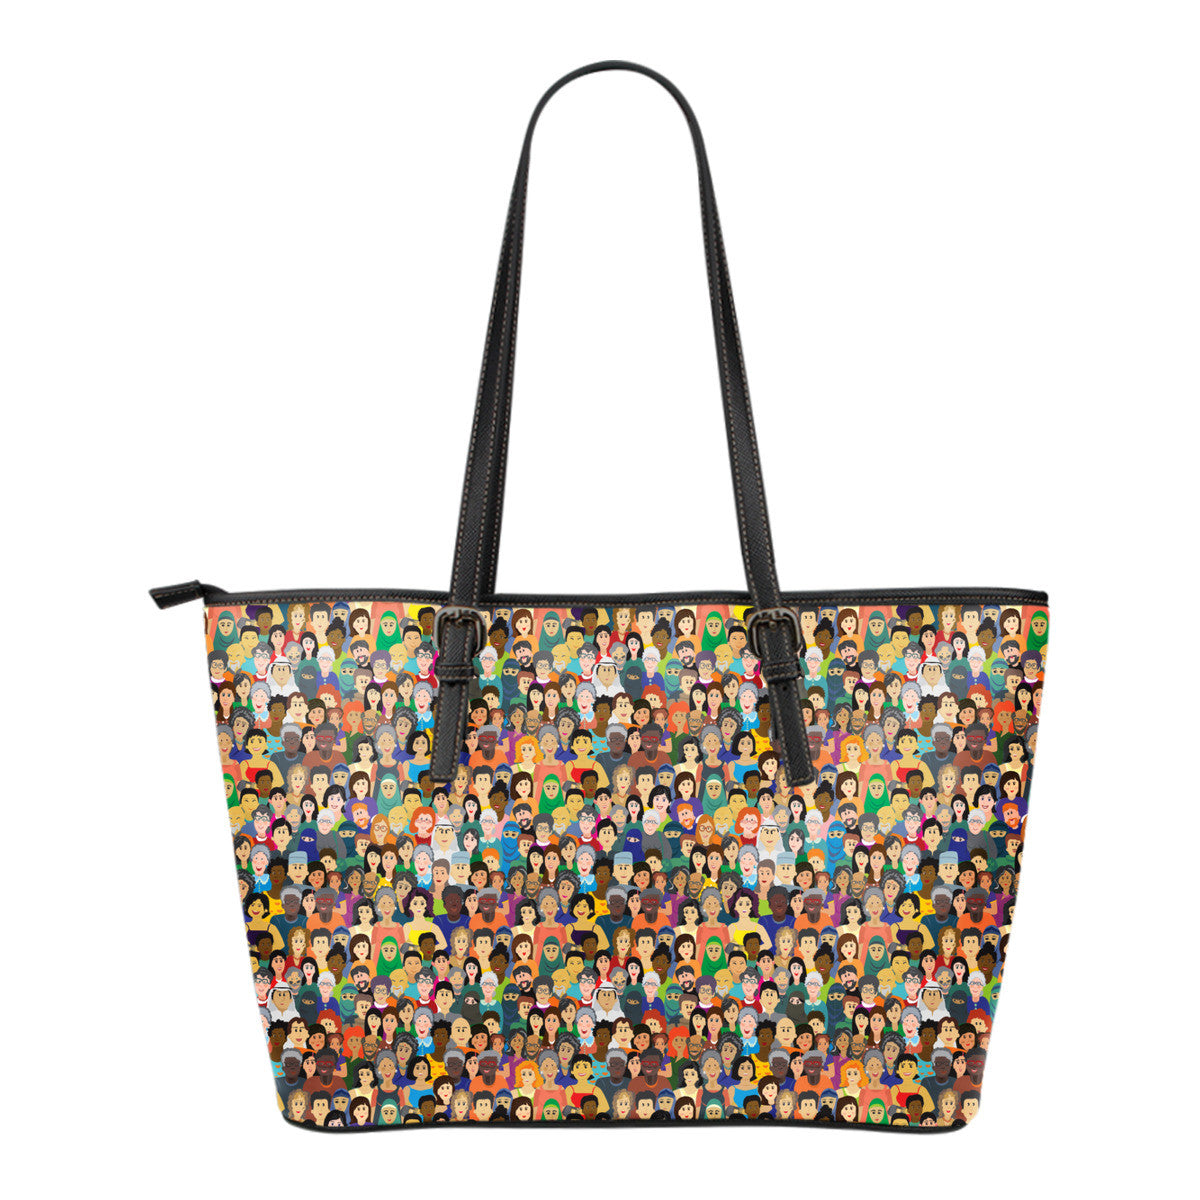 Diversity Rocks Small Leather Tote Bag